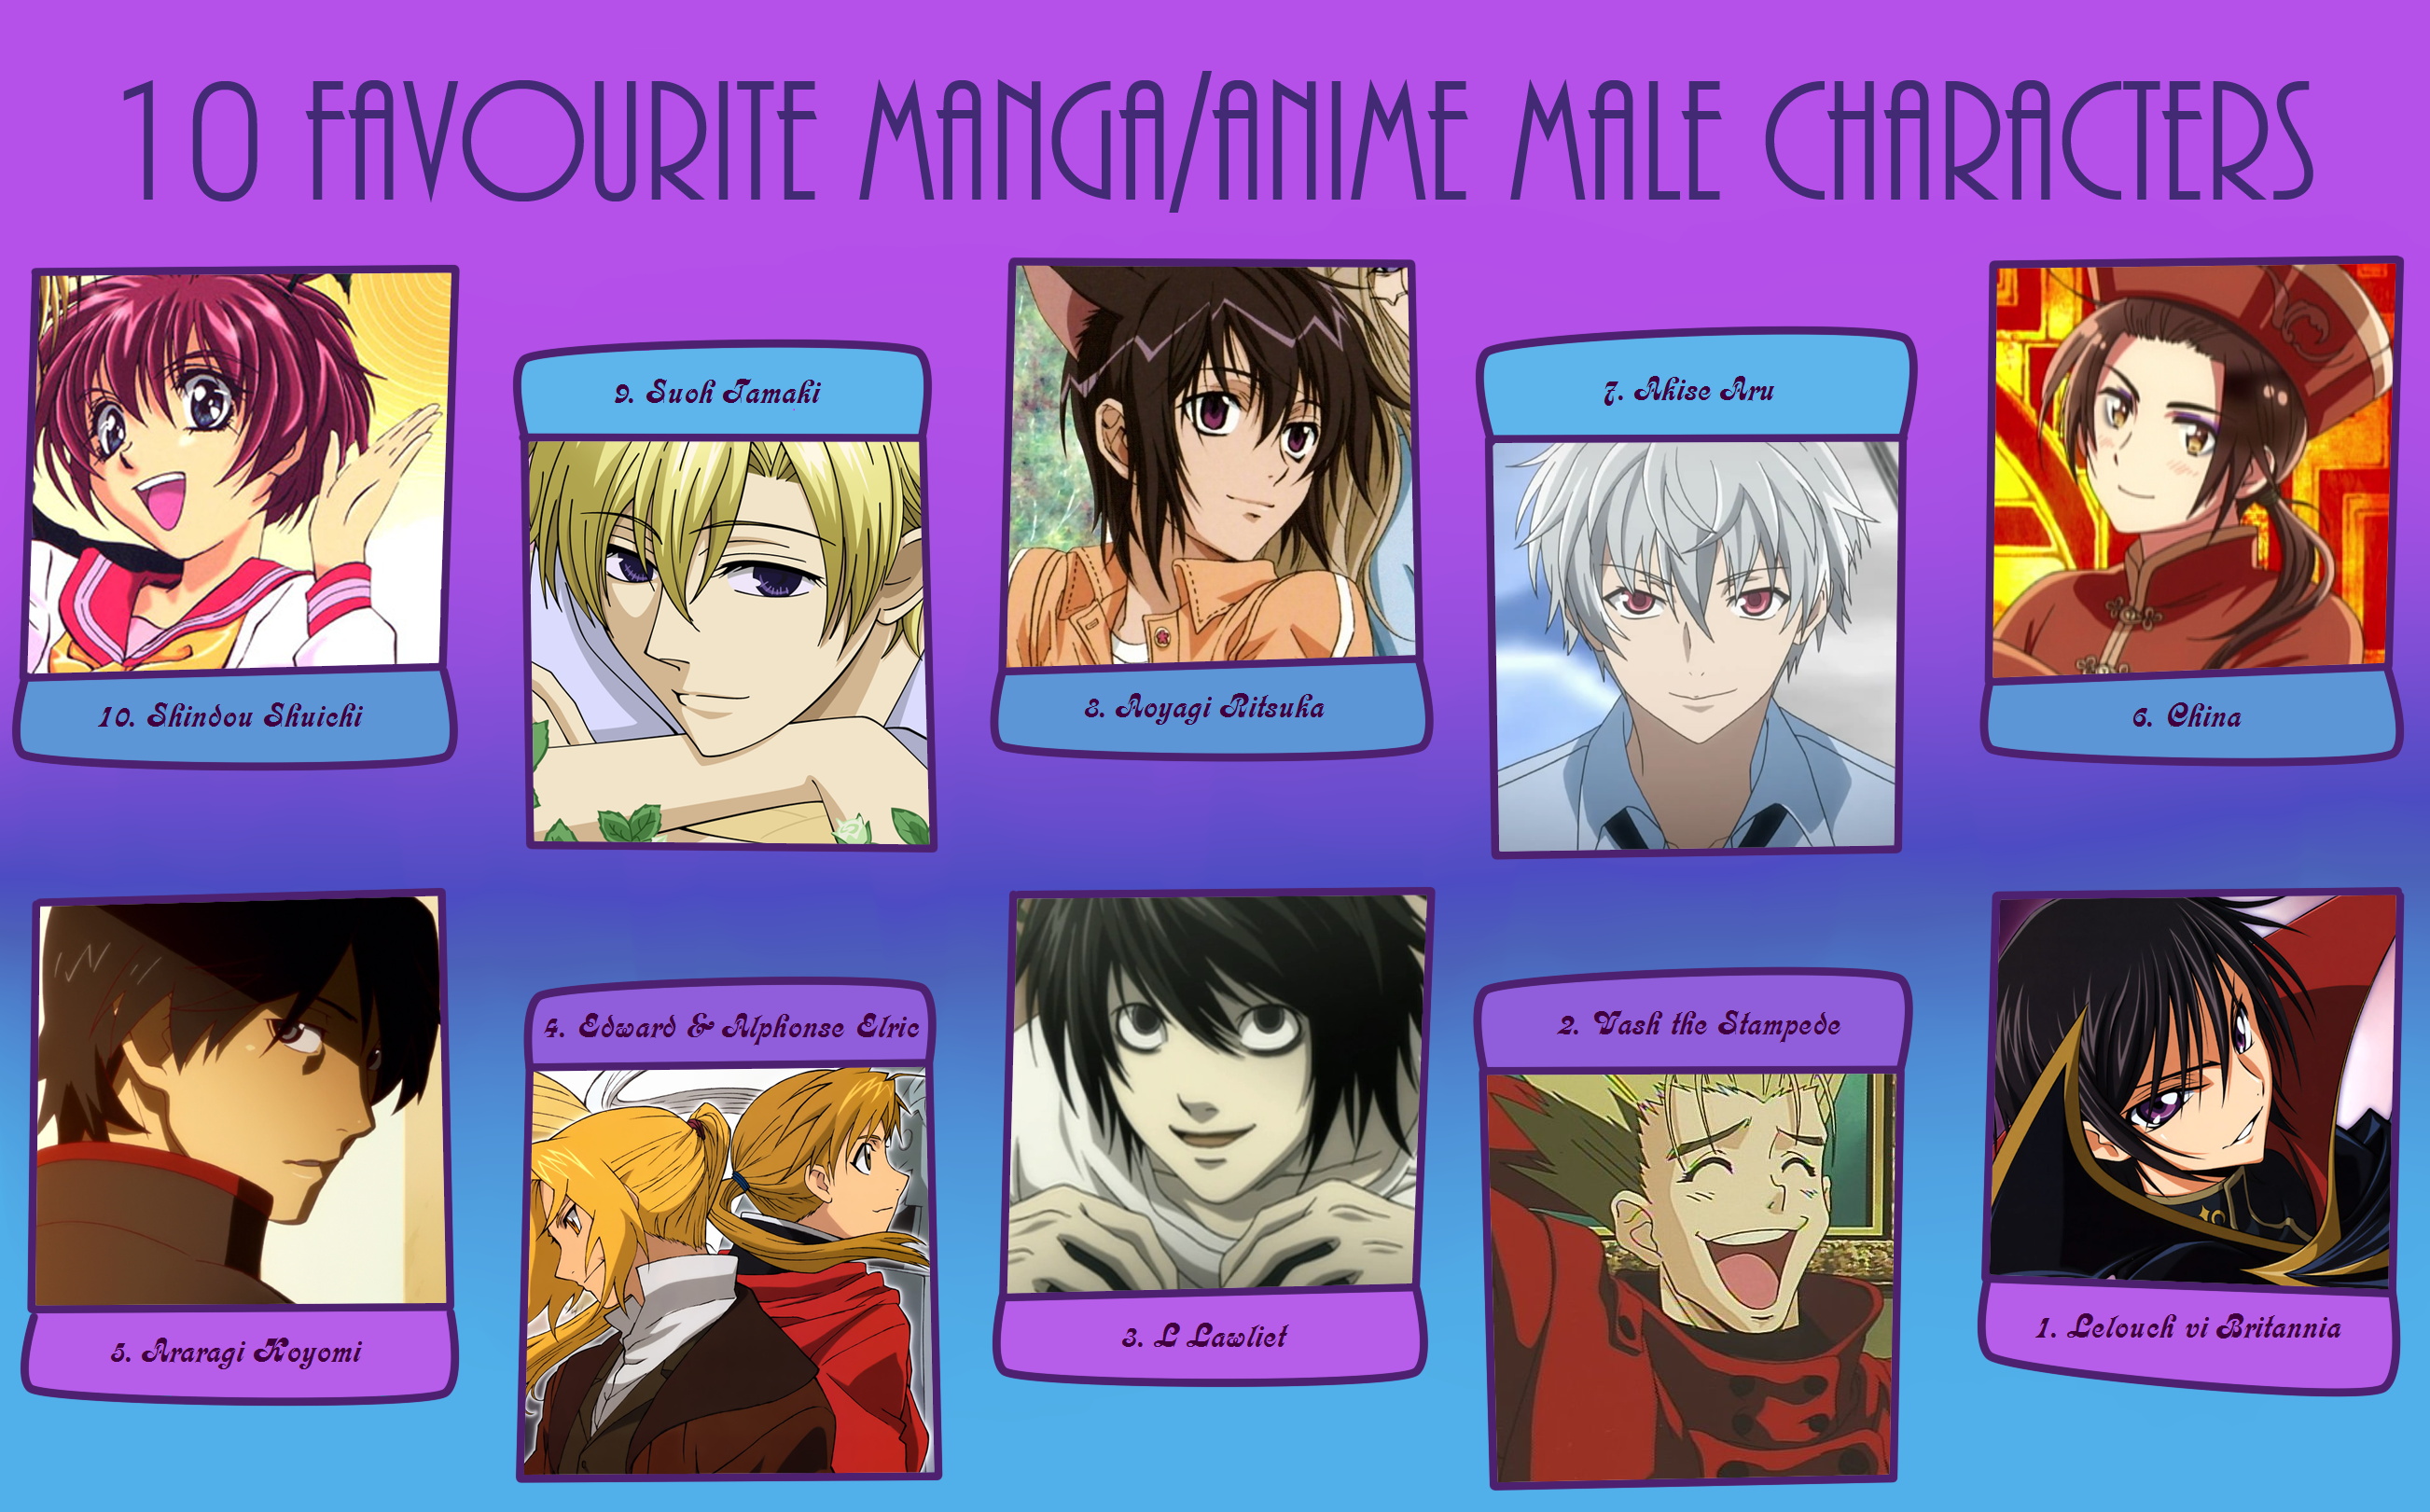 Anime Characters 2014 : My top favorite male anime manga characters by